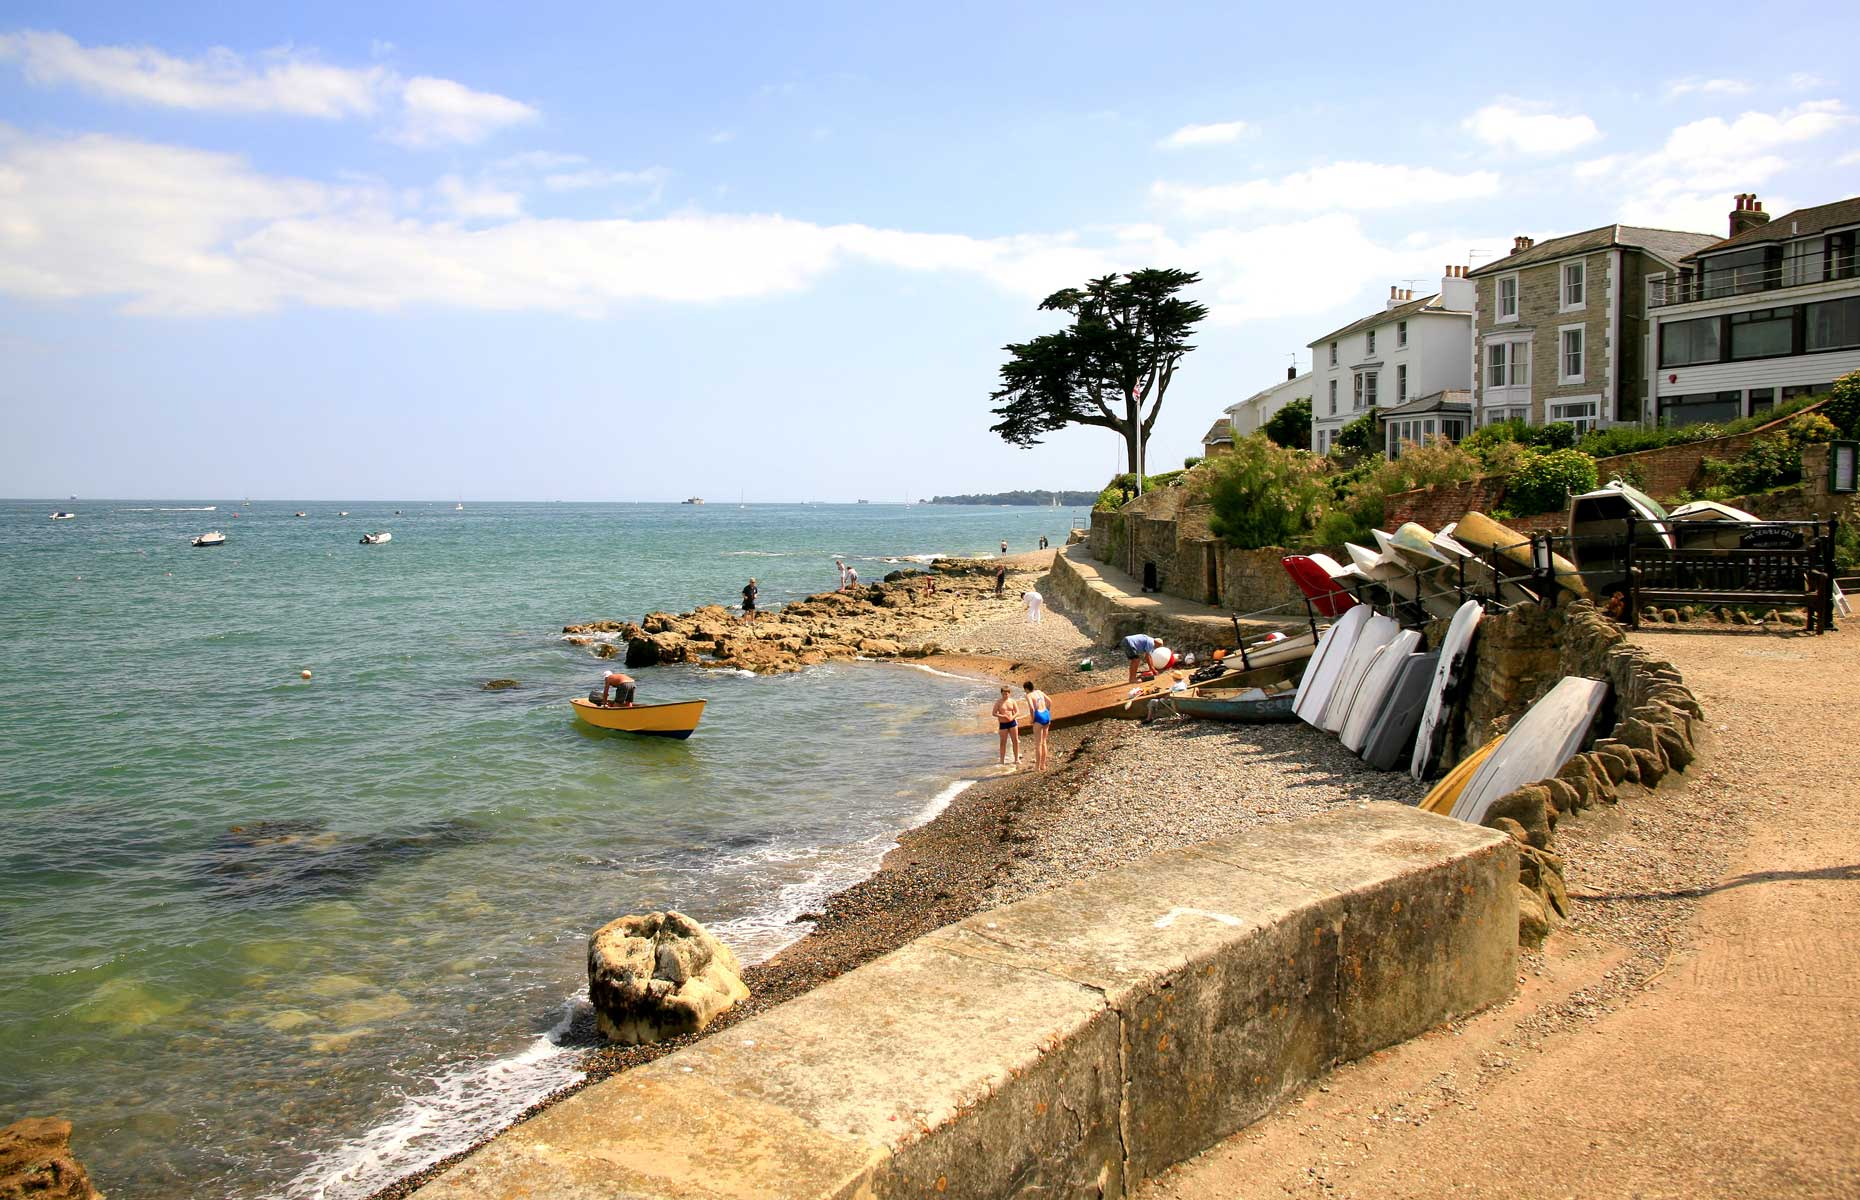 Seaview cove, Isle of Wight